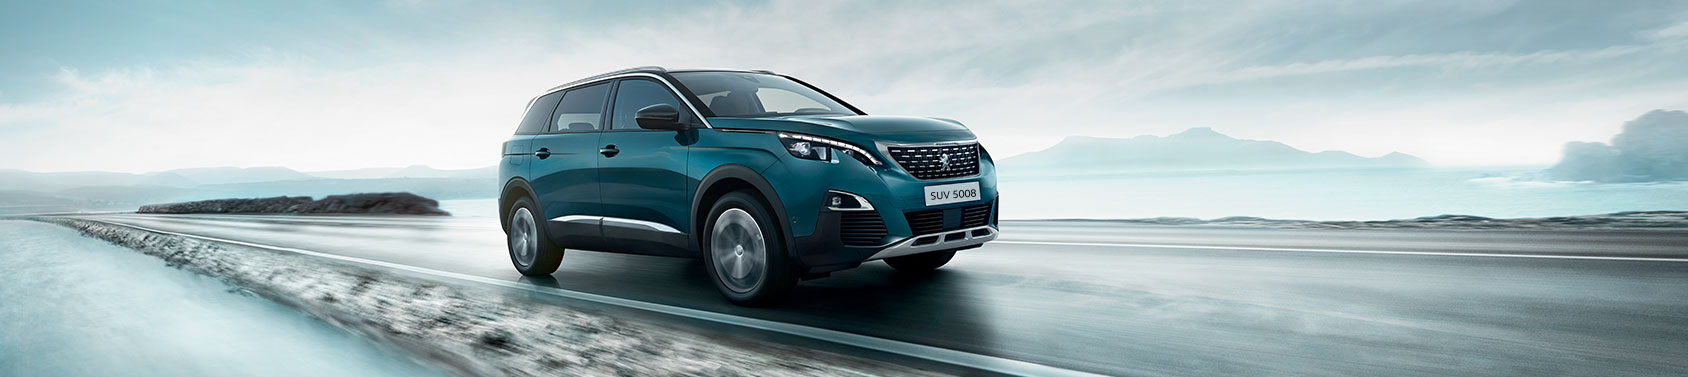 Promotions SUV Peugeot 5008